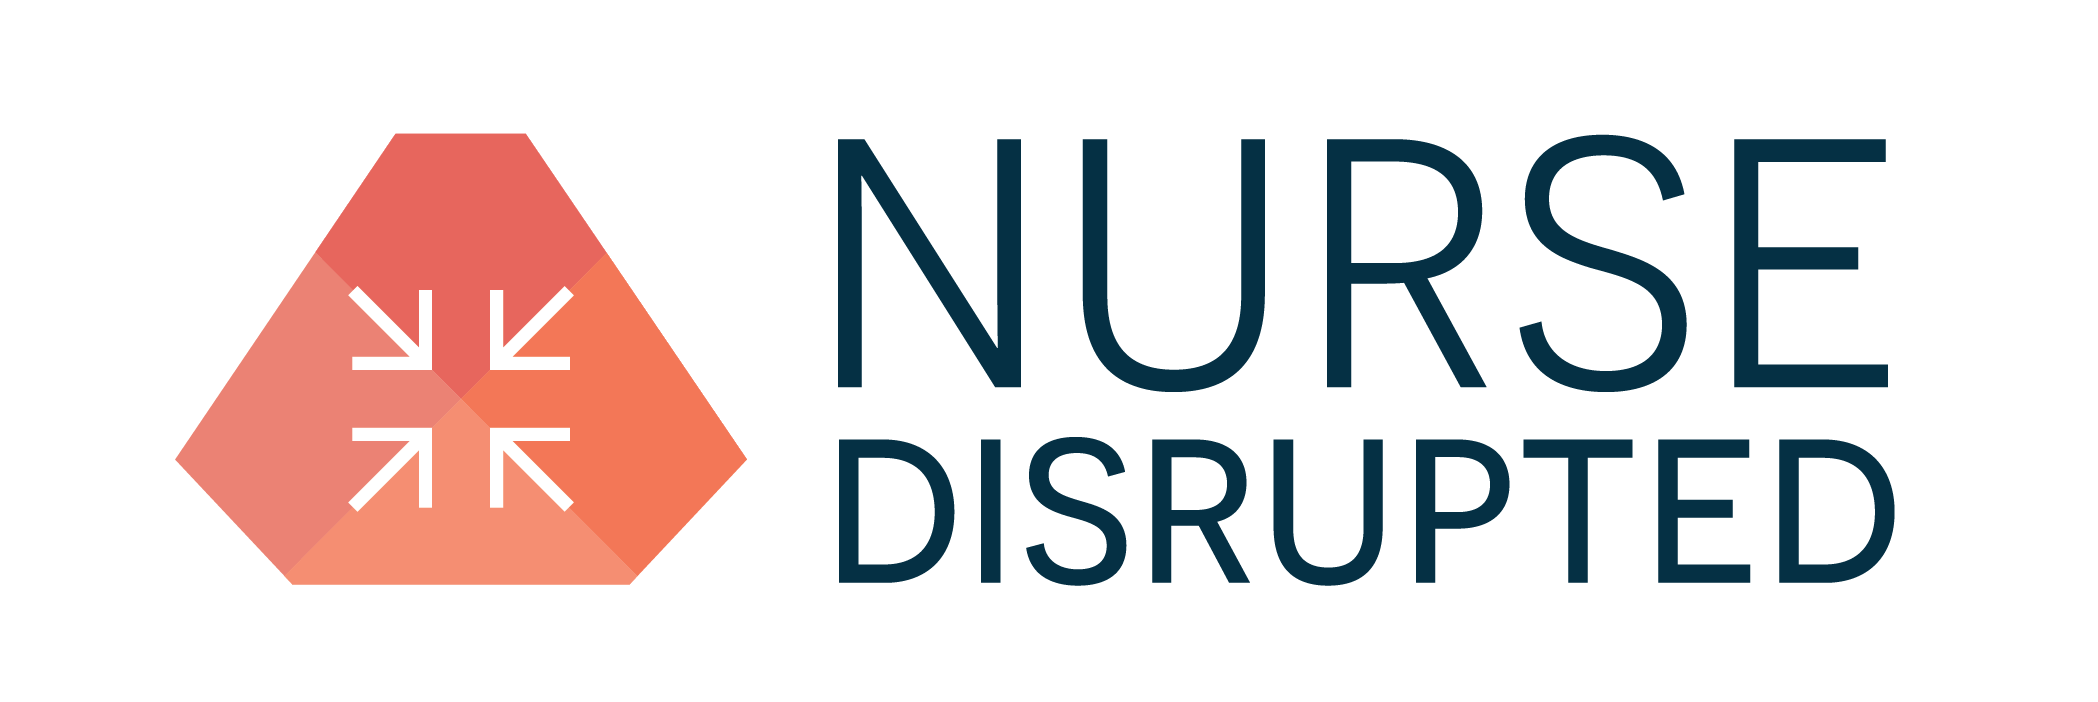 Nurse Disrupted